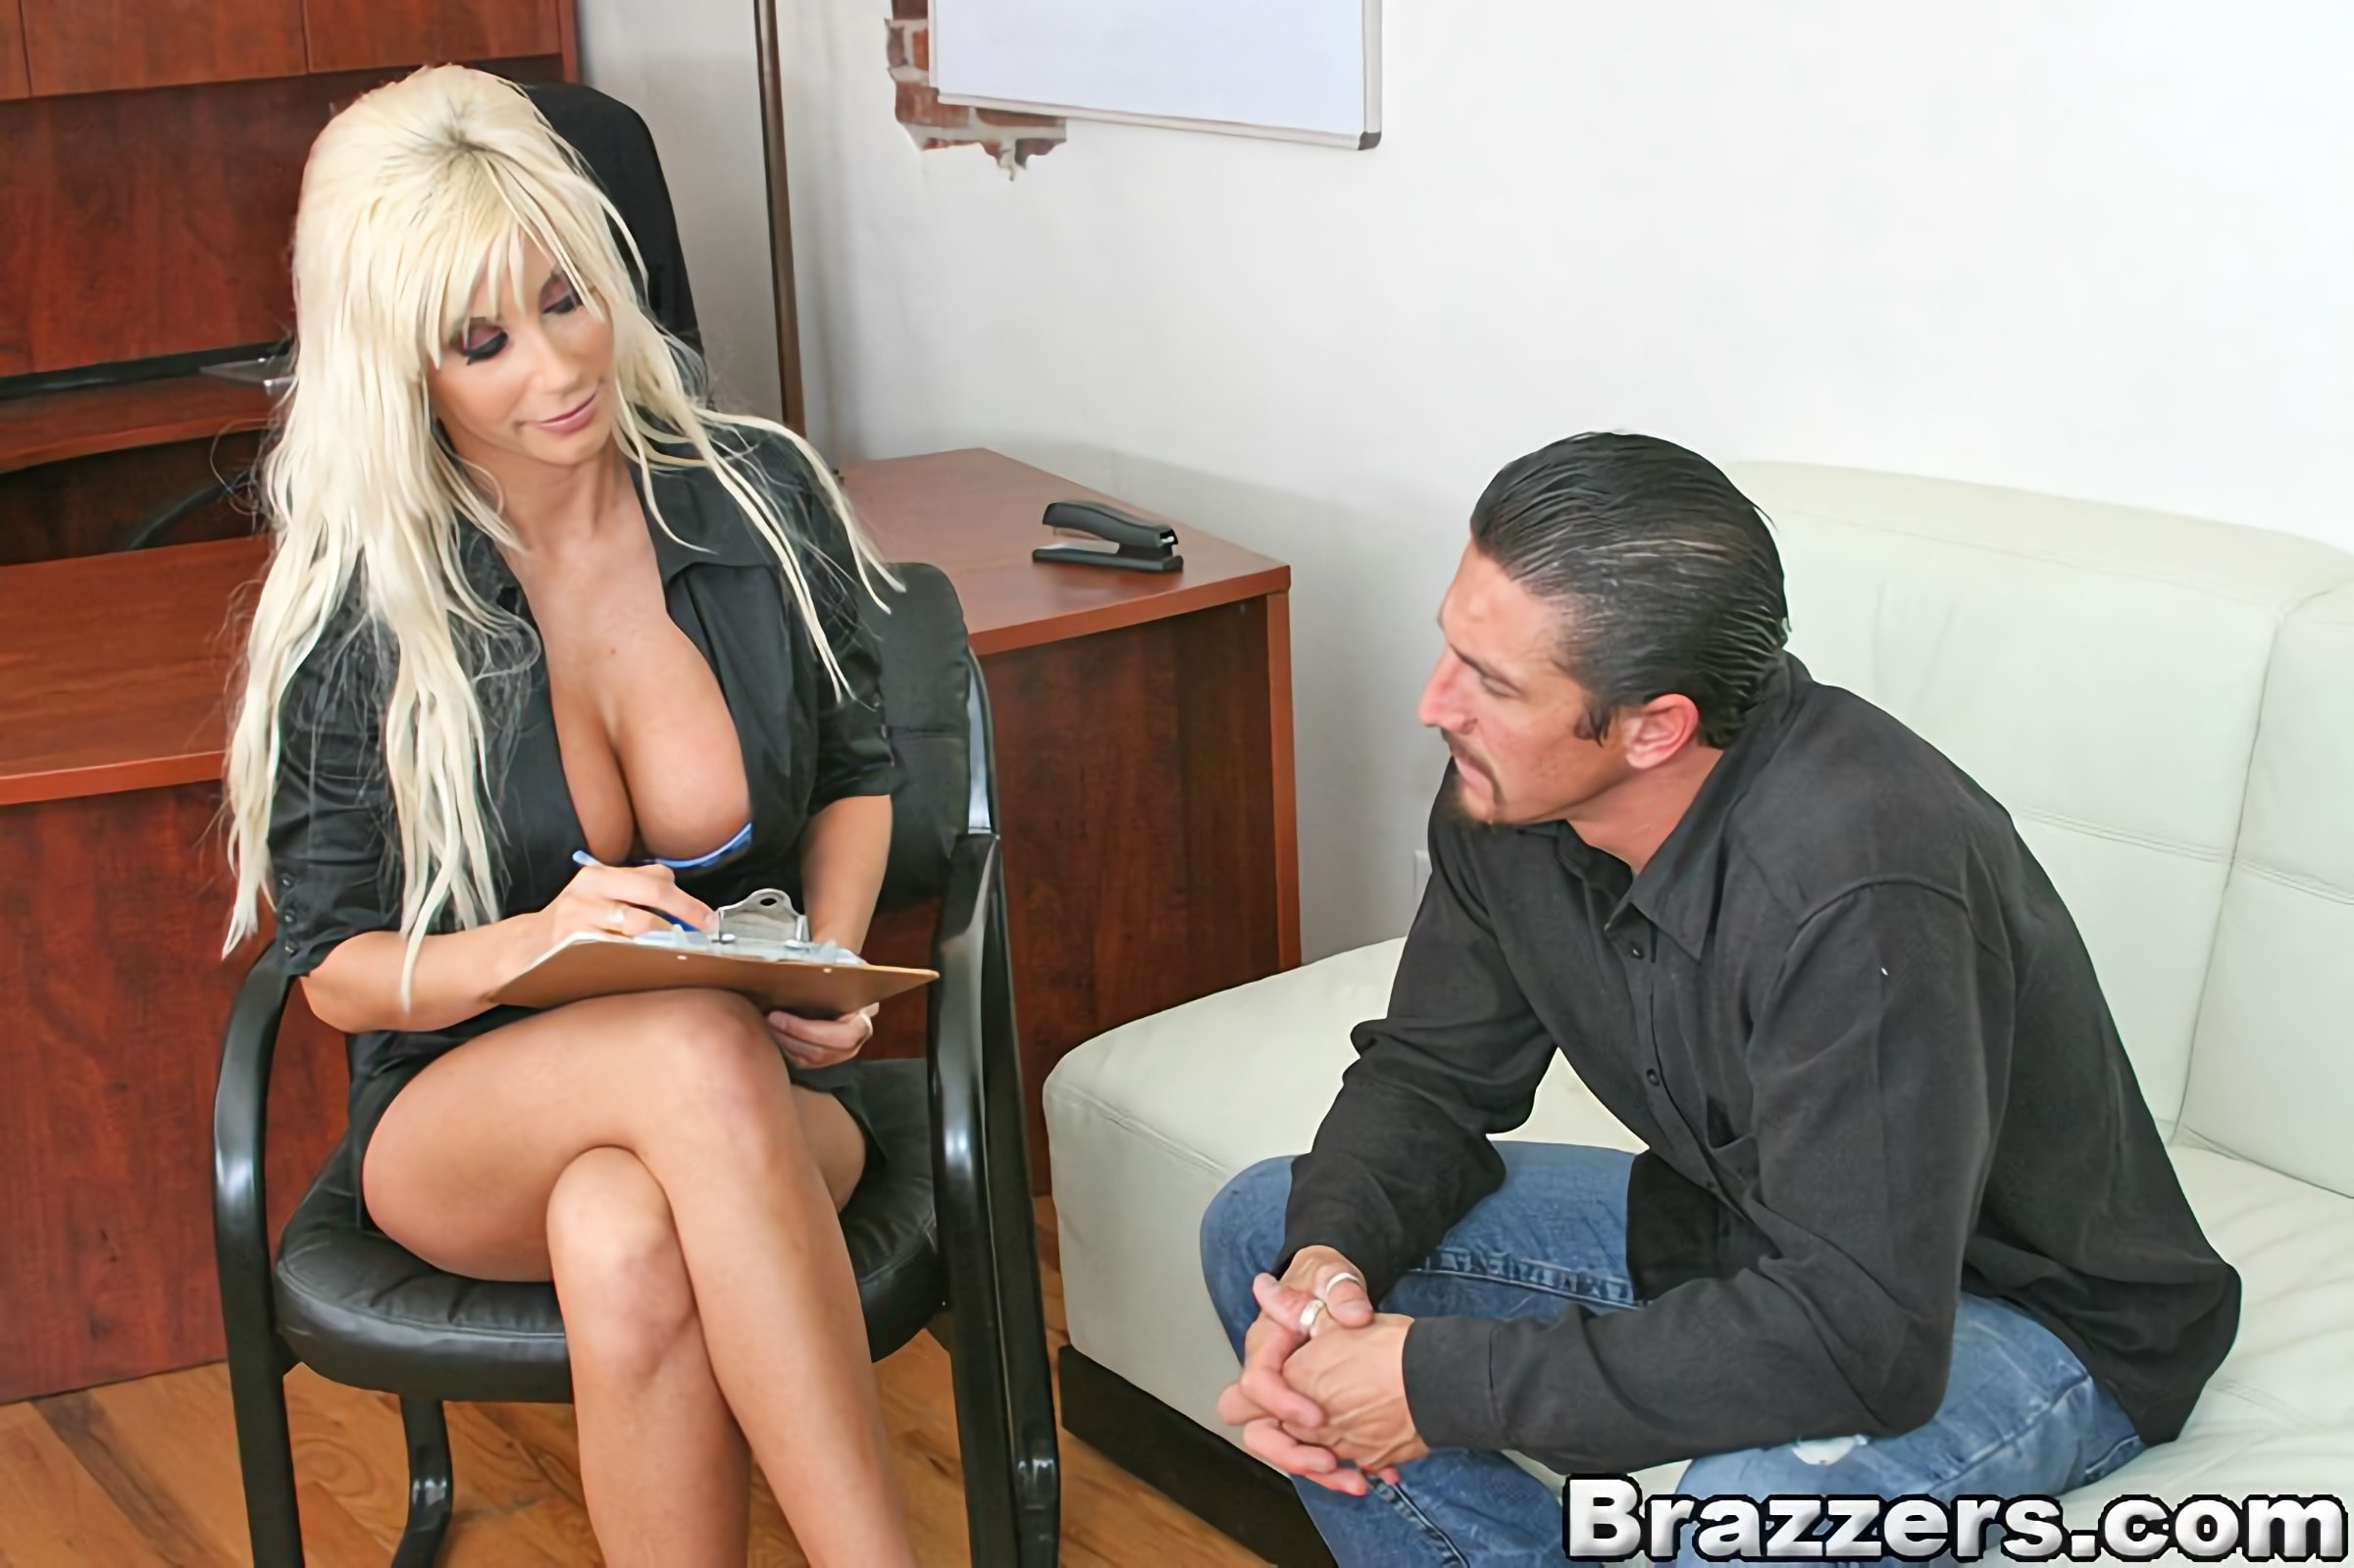 Brazzers 'Role playing treatment' starring Puma Swede (photo 5)